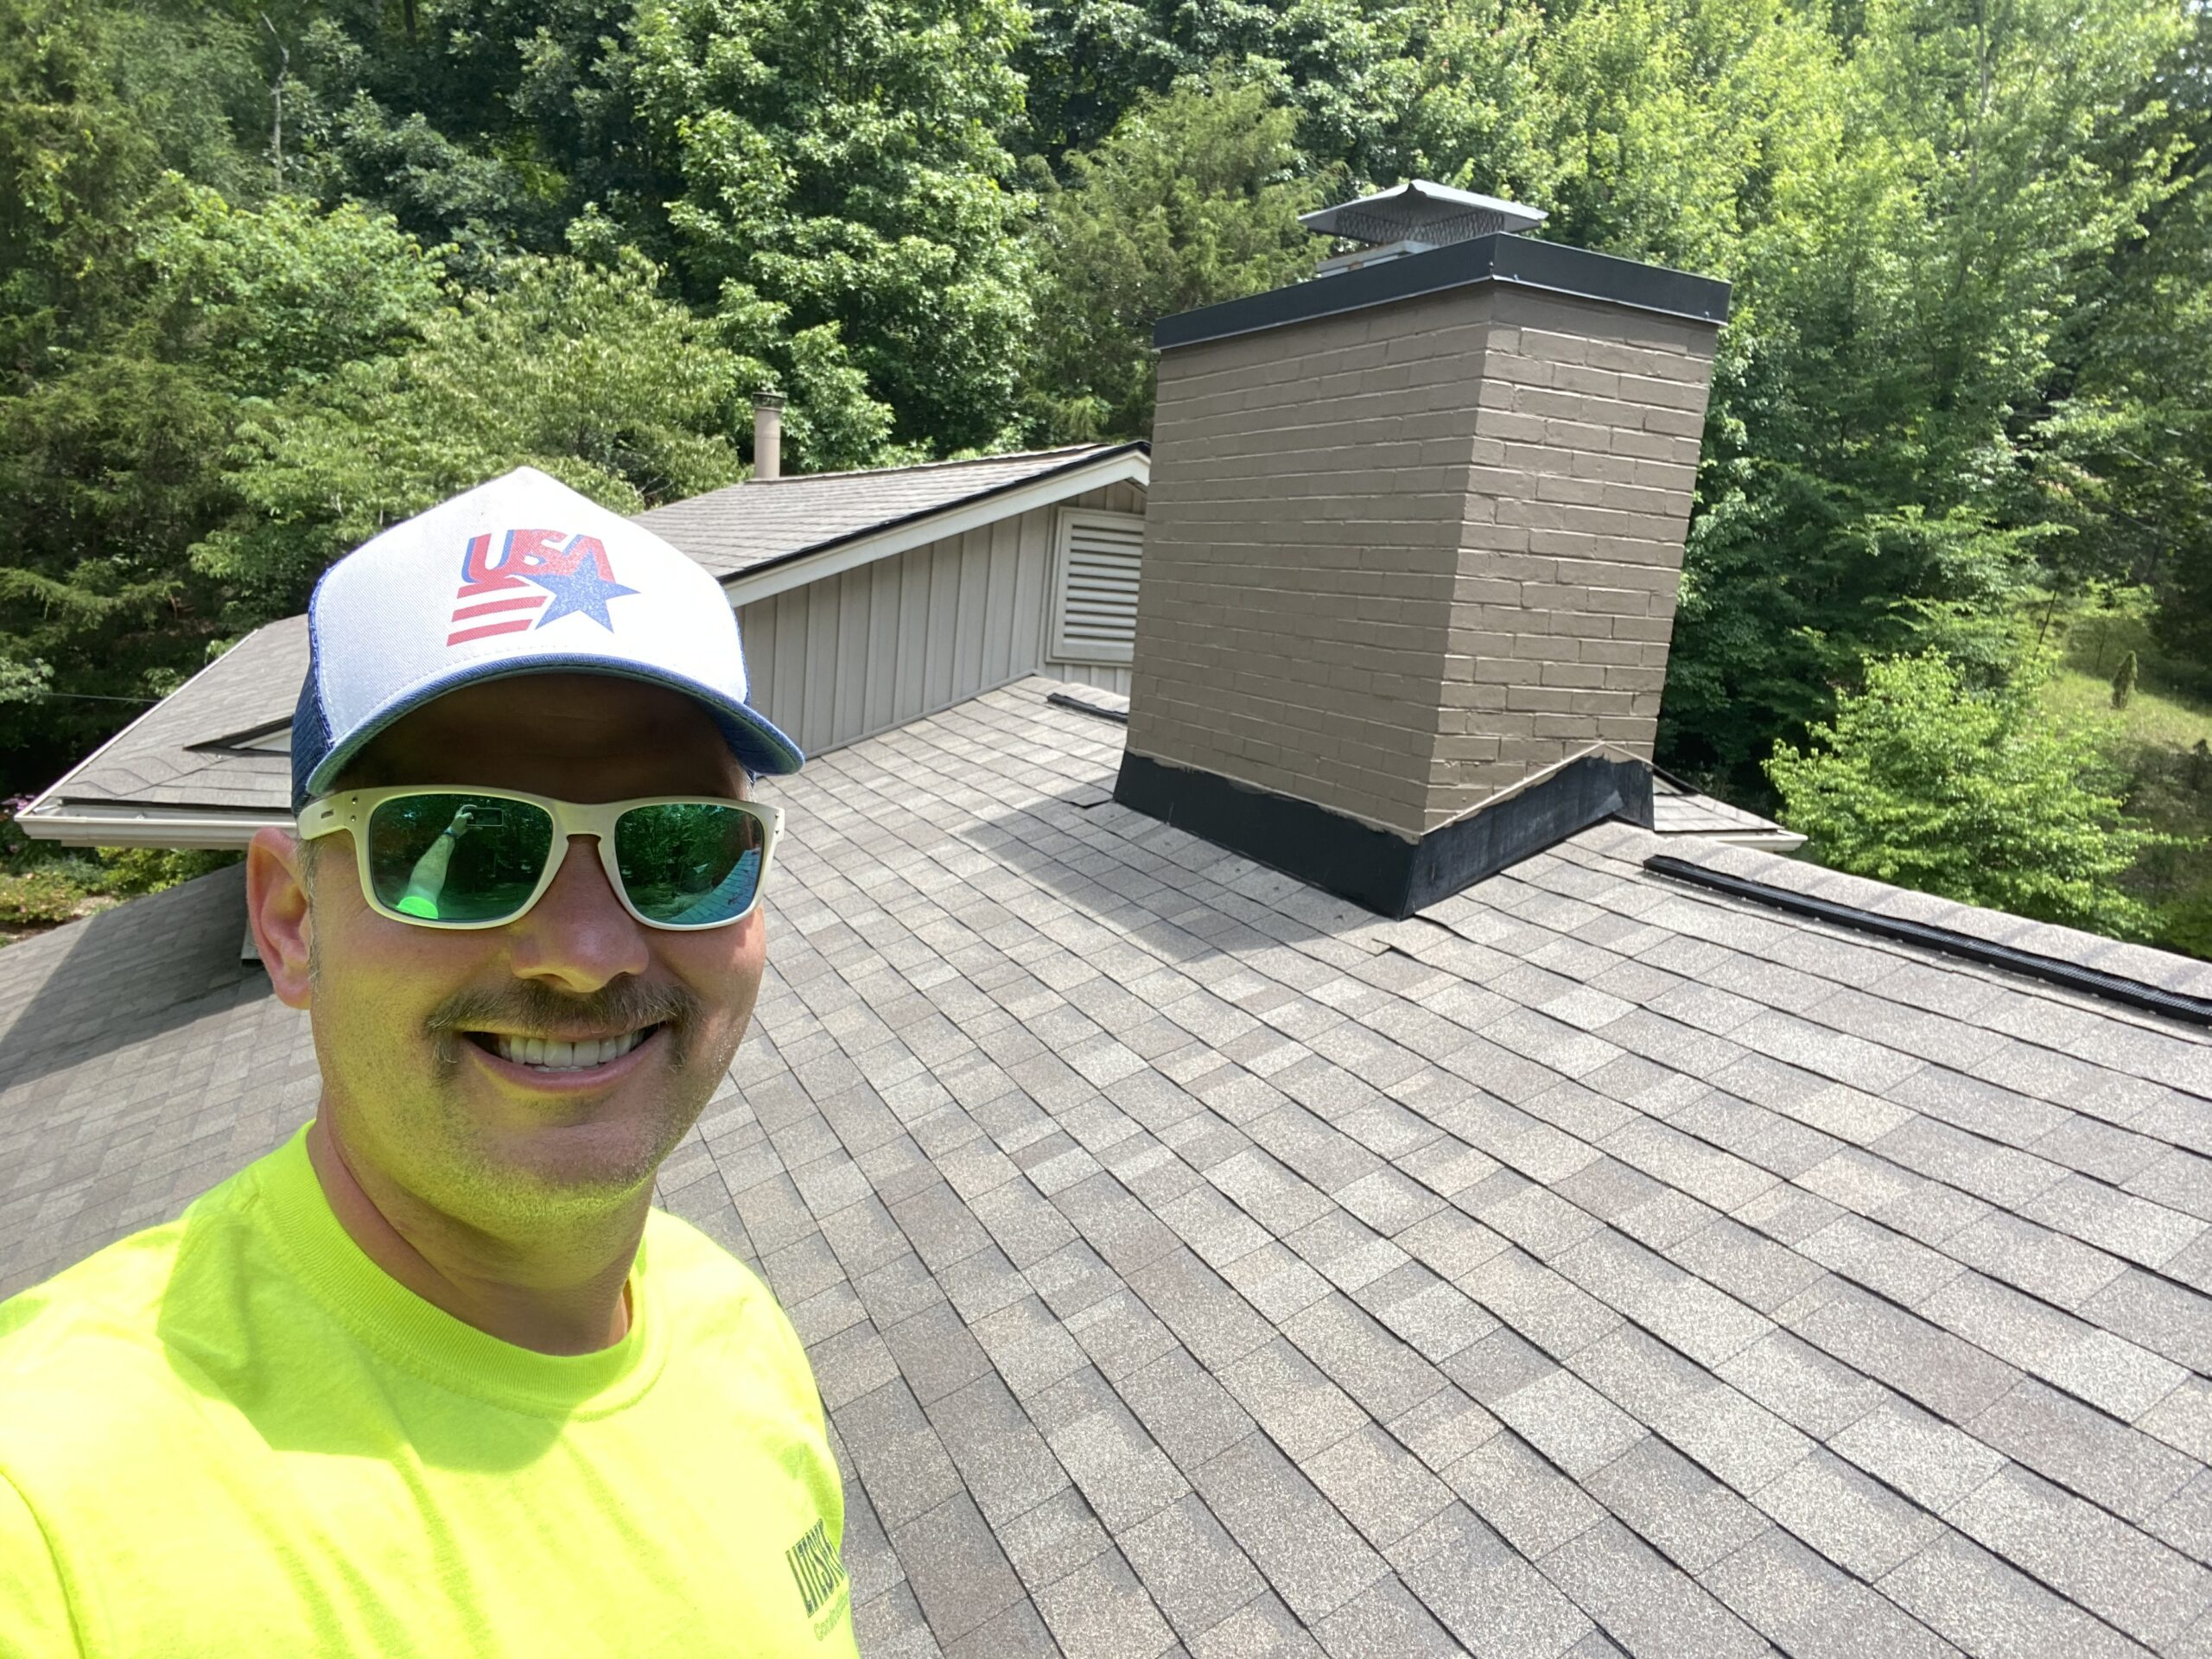 This is a view of the chimney on the roof.